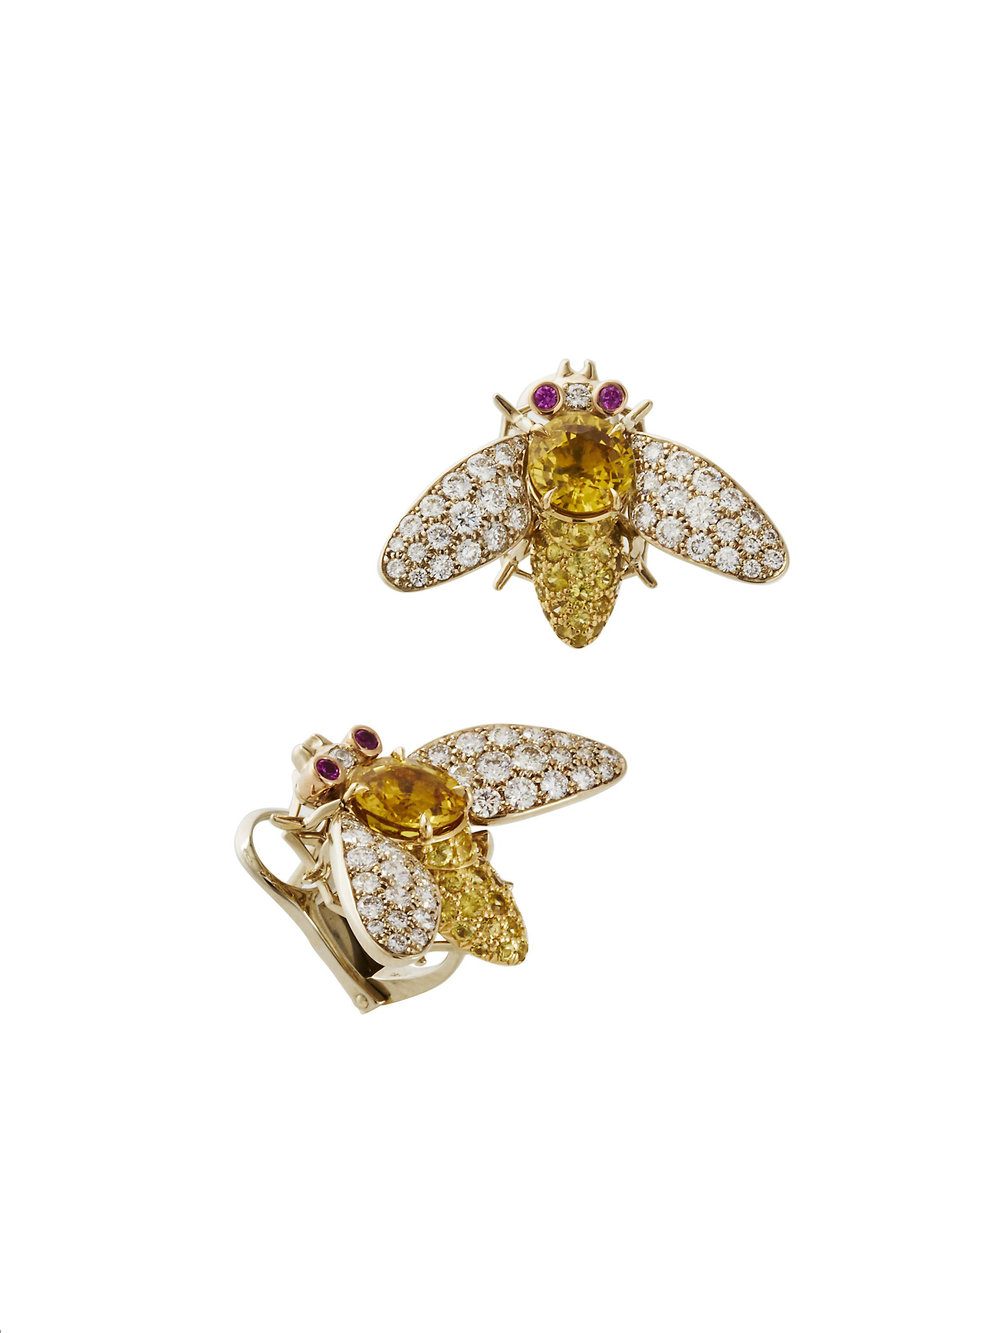 YELLOW BEES EARRINGS   2.22 CT OF DIAMONDS 1.8 CT Small Yellow Sapphires 4.55 CT Center Stone Yellow Sapphire (6.35 CT Sapphire Total)       Contact for inquiry